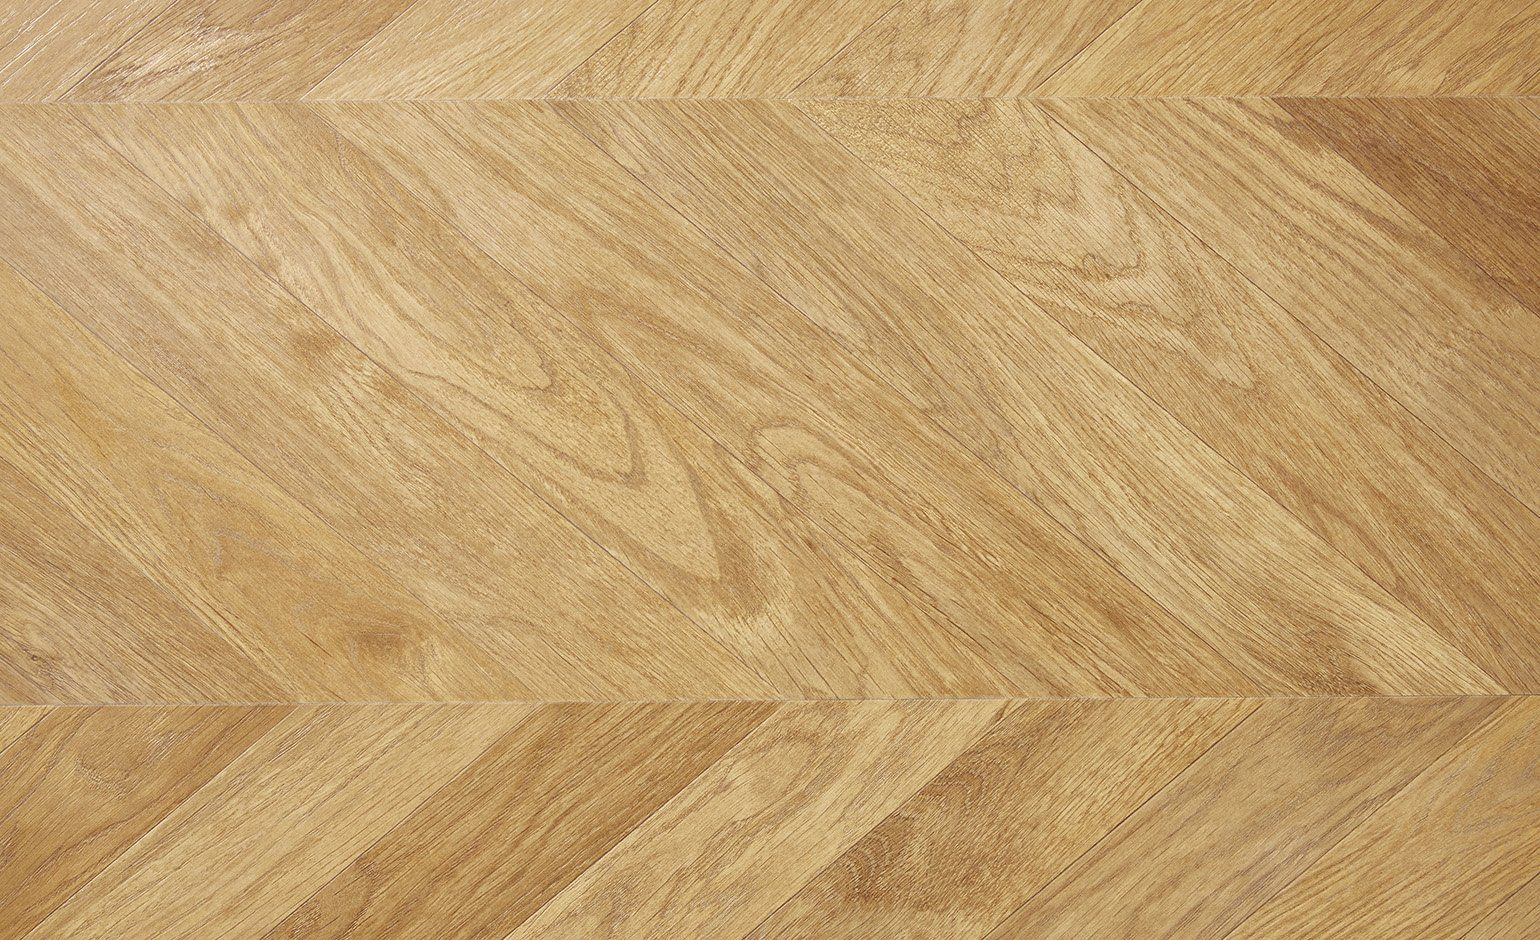 Parquet Stratifie Point De Hongrie Sol Stratifié Point De Hongrie Chevron Chêne Blond Dalle